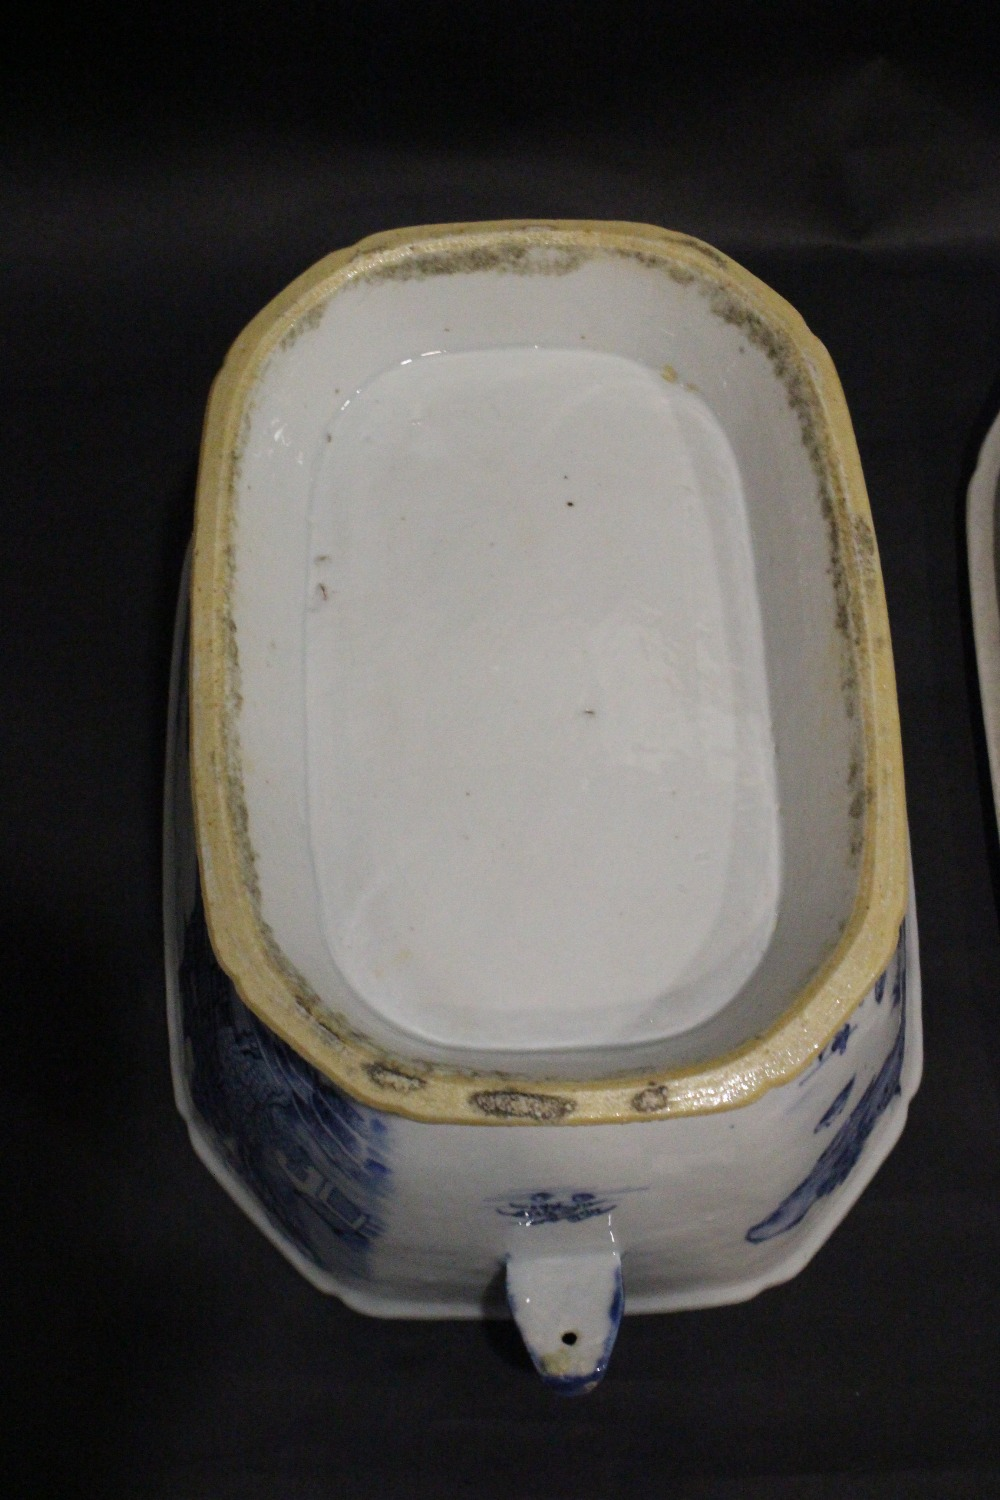 Lot 22 - A LARGE 19TH CENTURY CHINESE EXPORT WARE TERRIN DISH, with lid, having blue & white 'Willow Pattern'